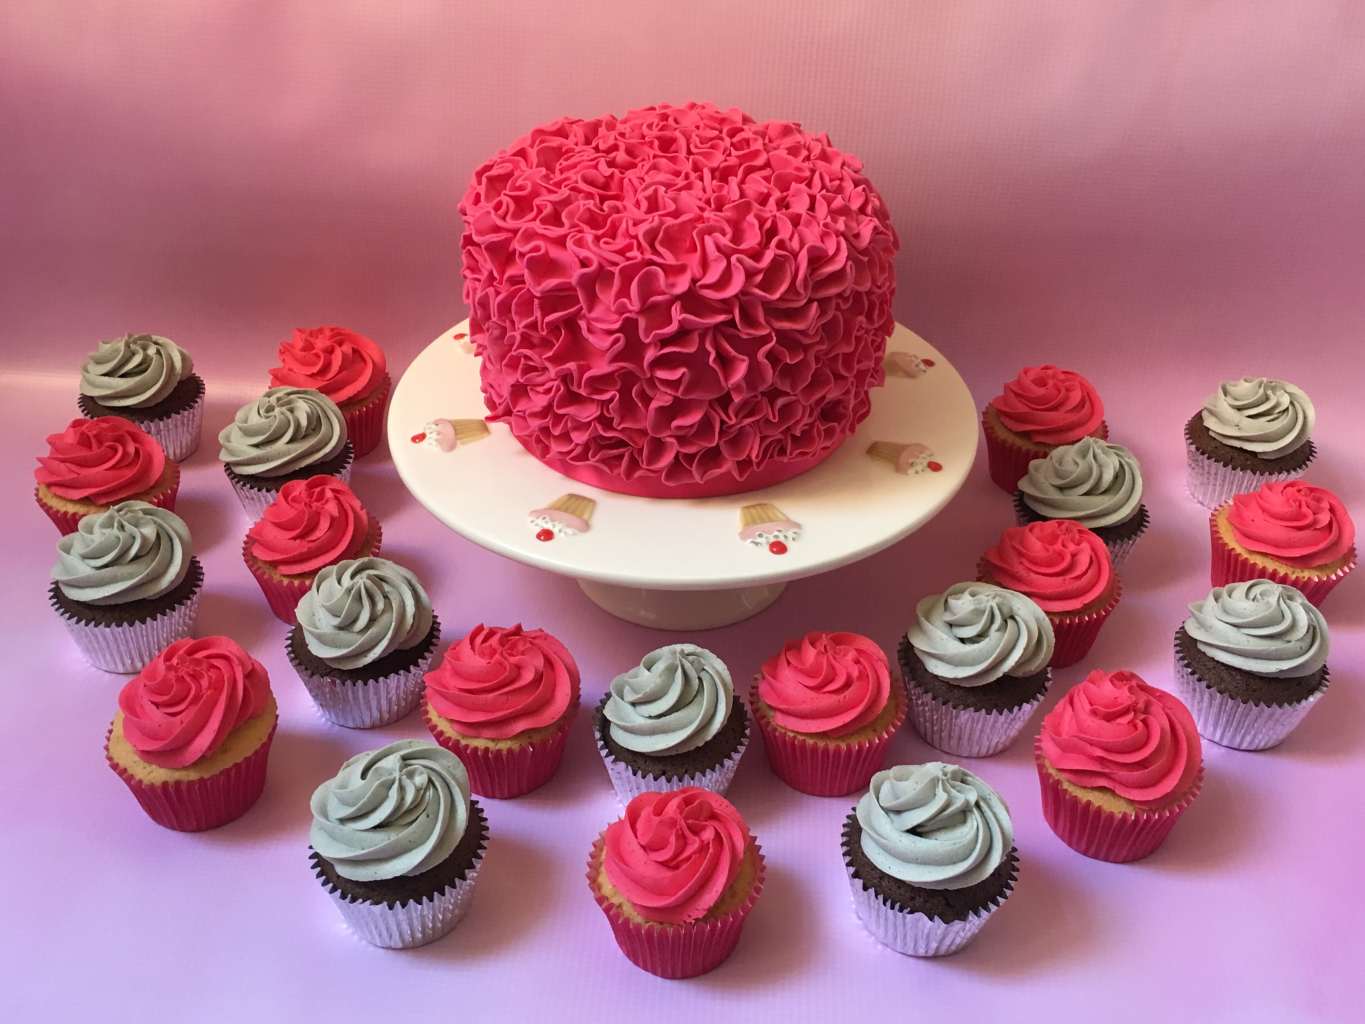 Pink-ruffle-cake-with-matching-pink-and-silver-cupcakes